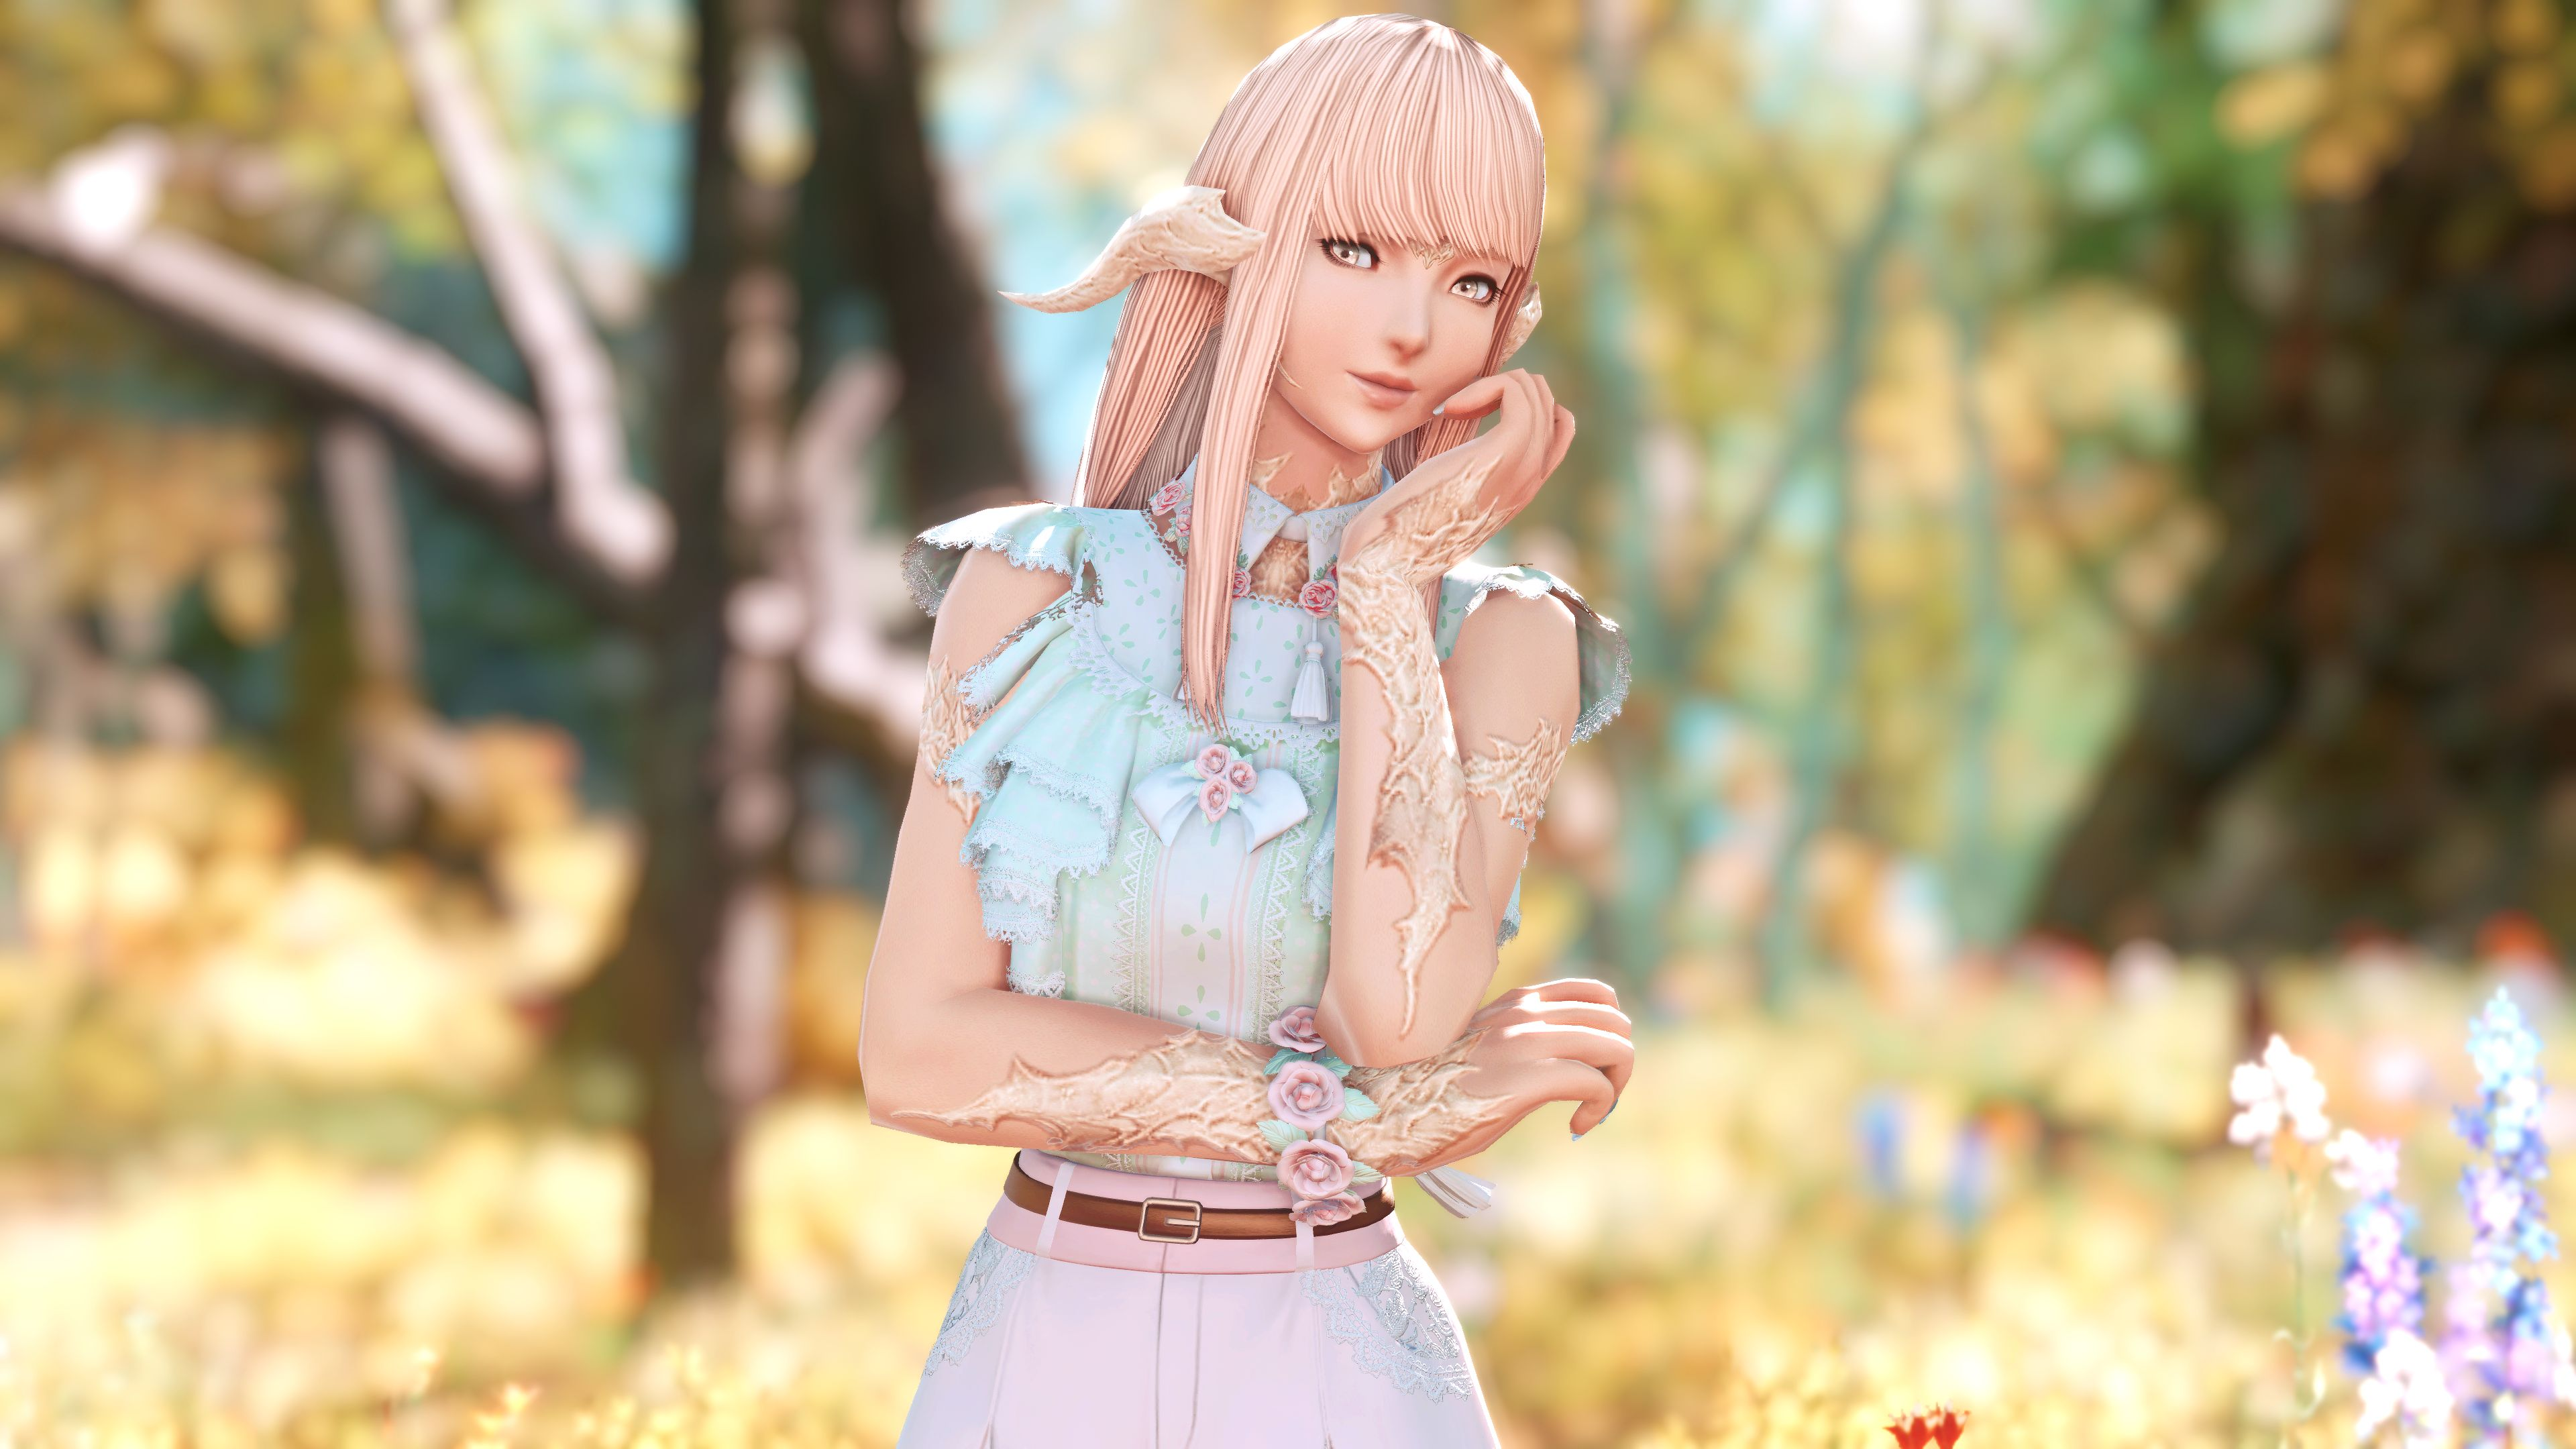 /final-fantasy-xiv-reshade-guide-hs13333c feature image